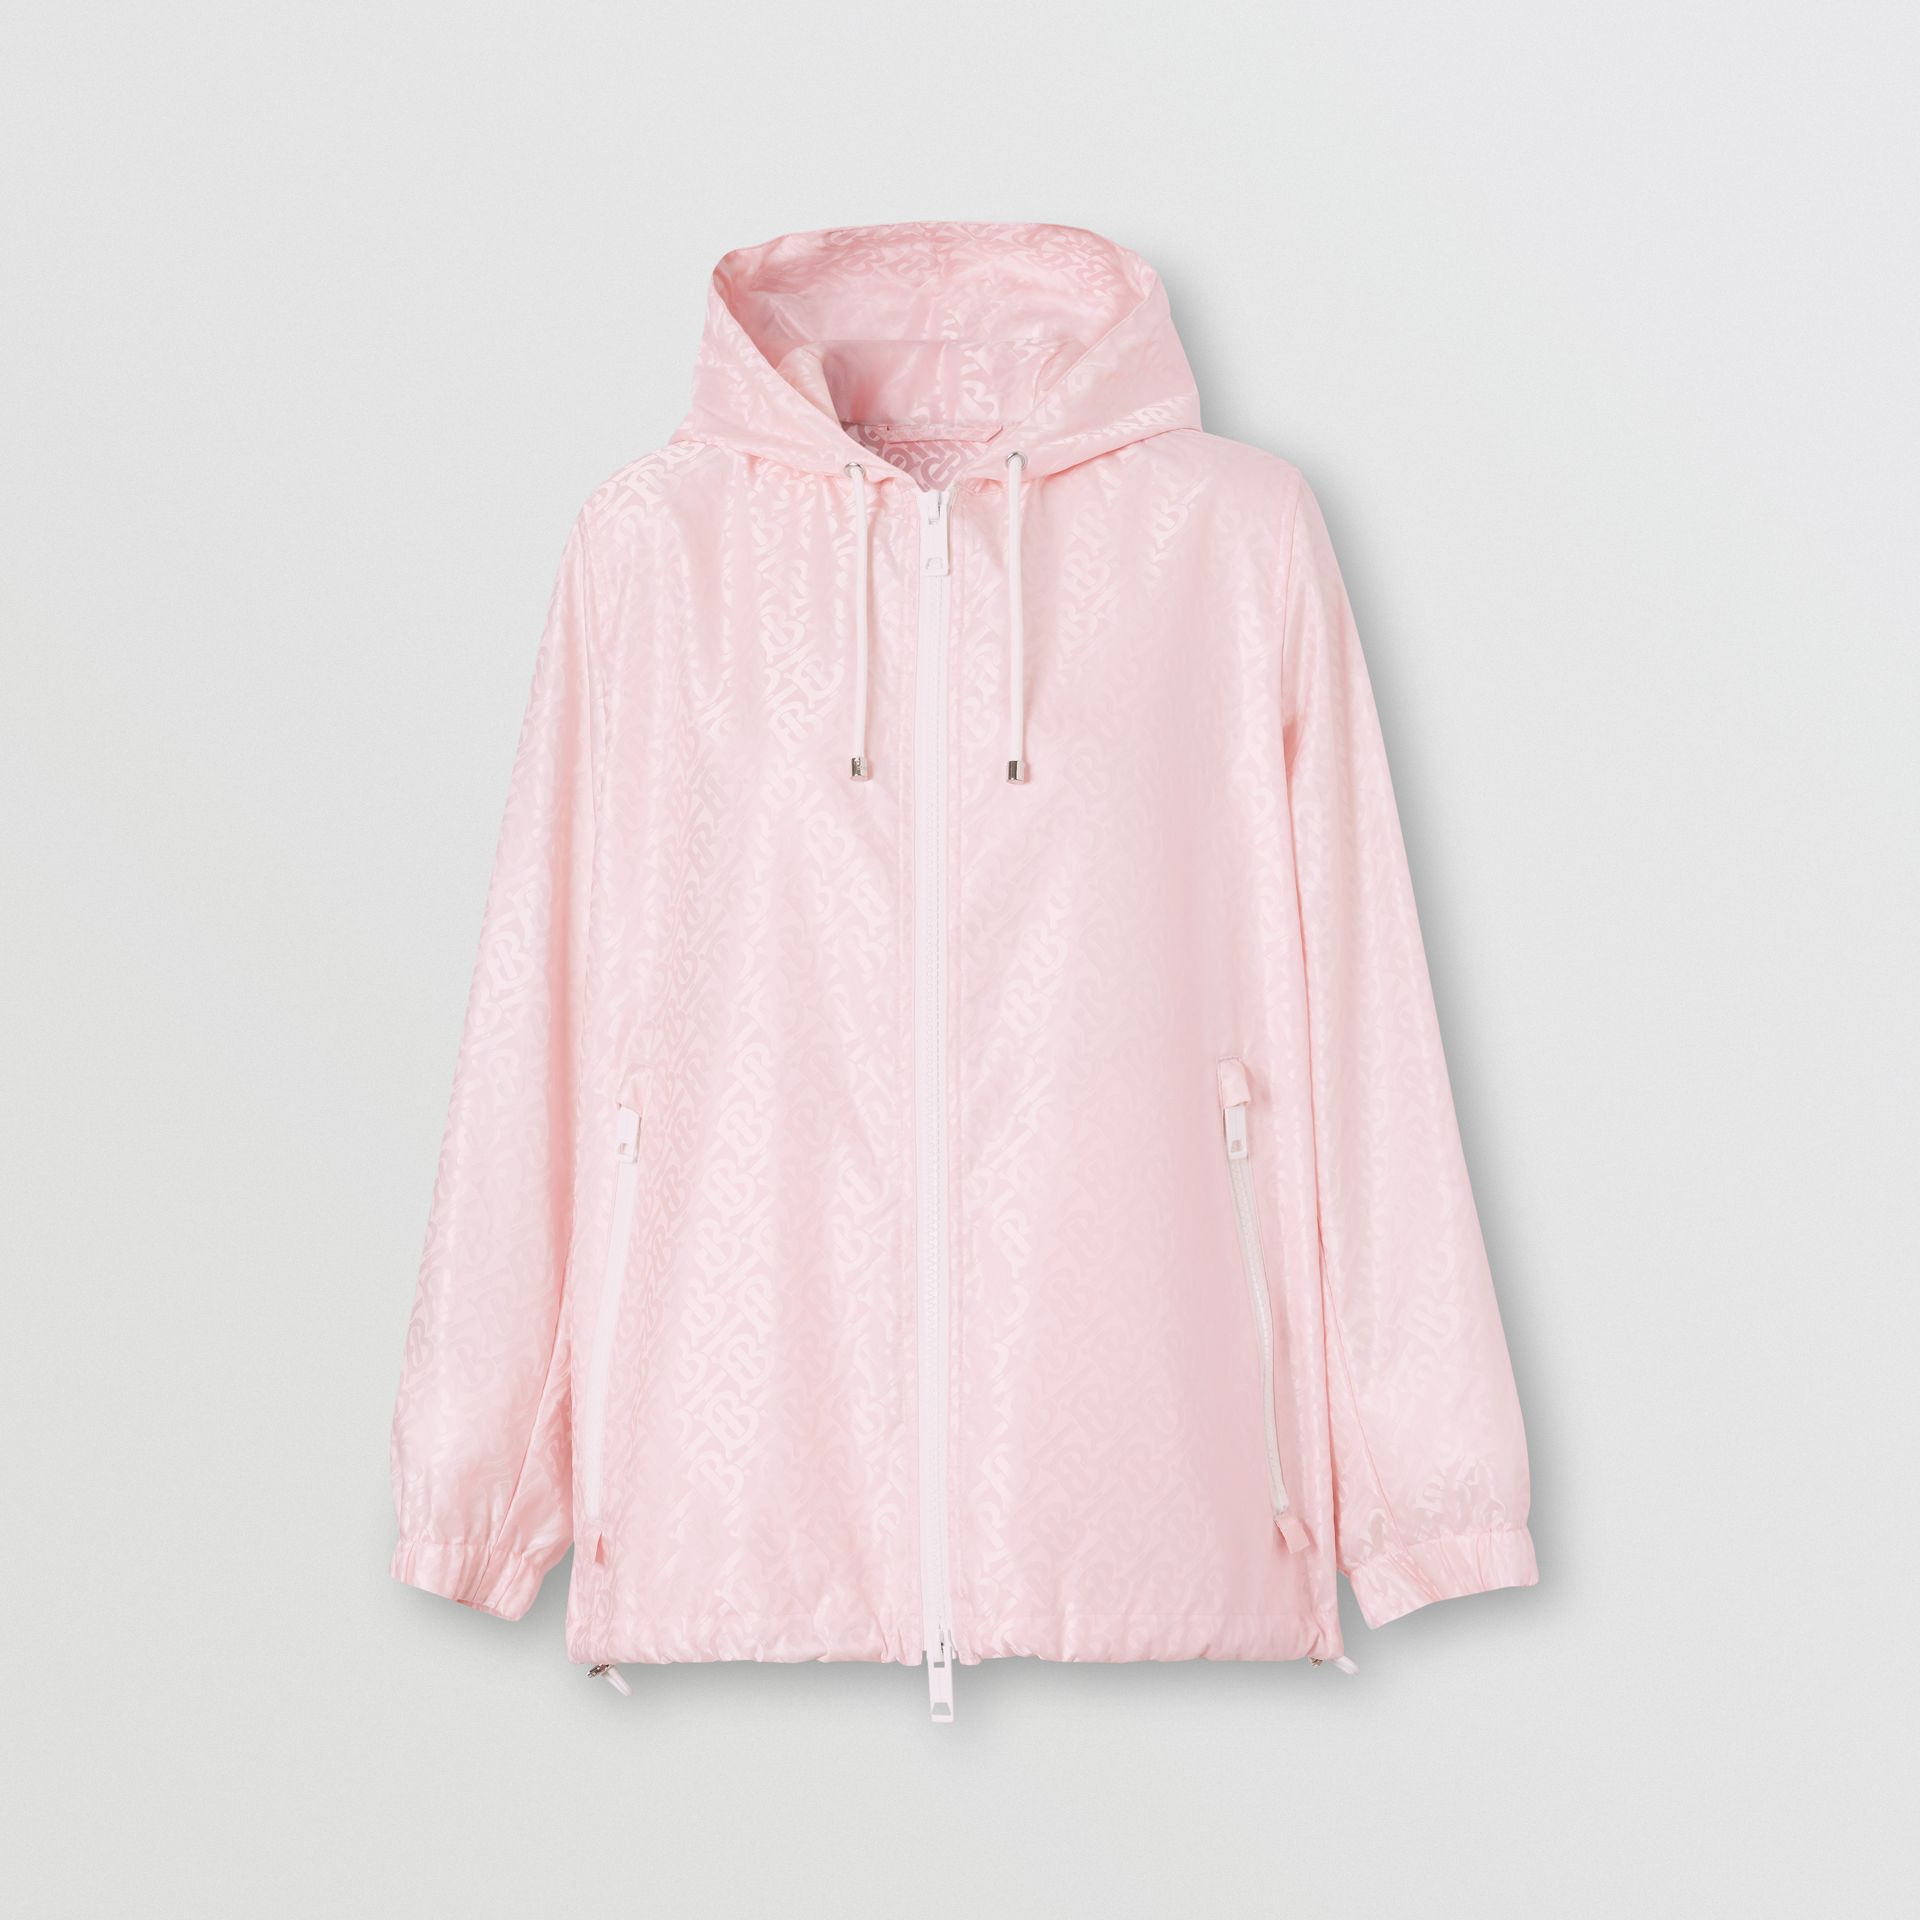 Monogram ECONYL® Jacquard Hooded Jacket in Cloud Pink - Women | Burberry - gallery image 0